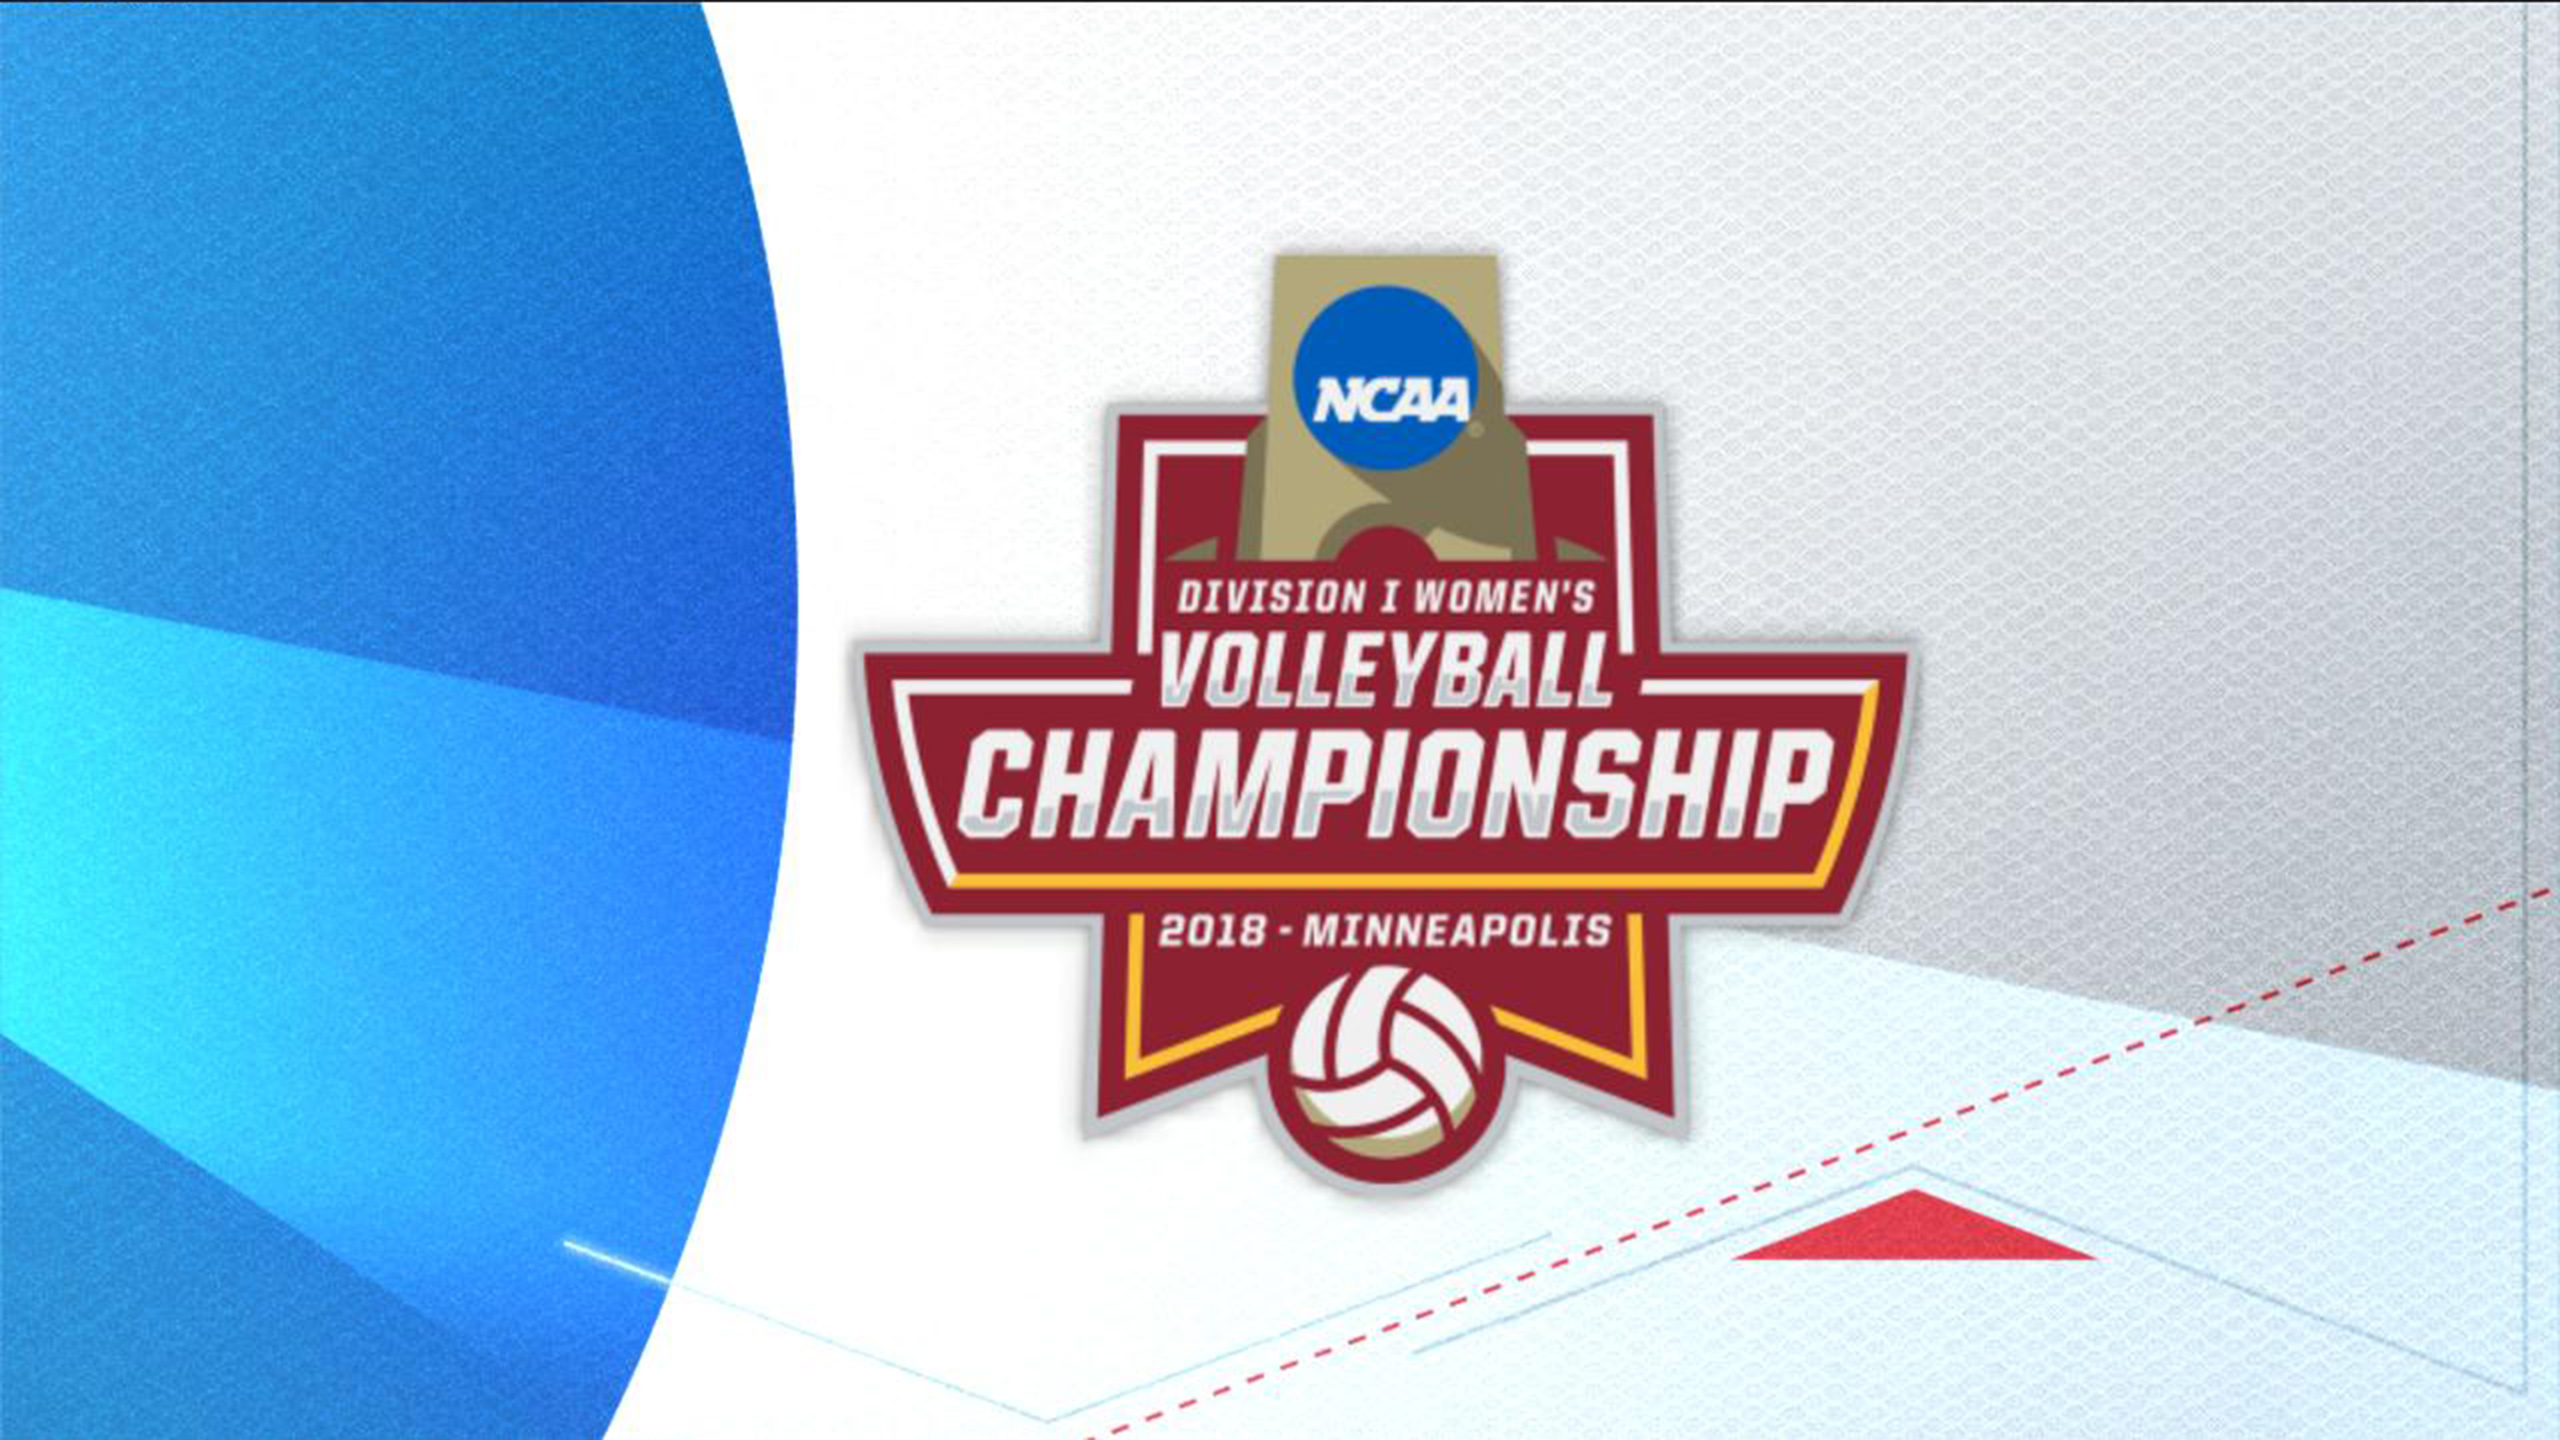 NCAA Women's Volleyball Tournament (Trophy Presentation)